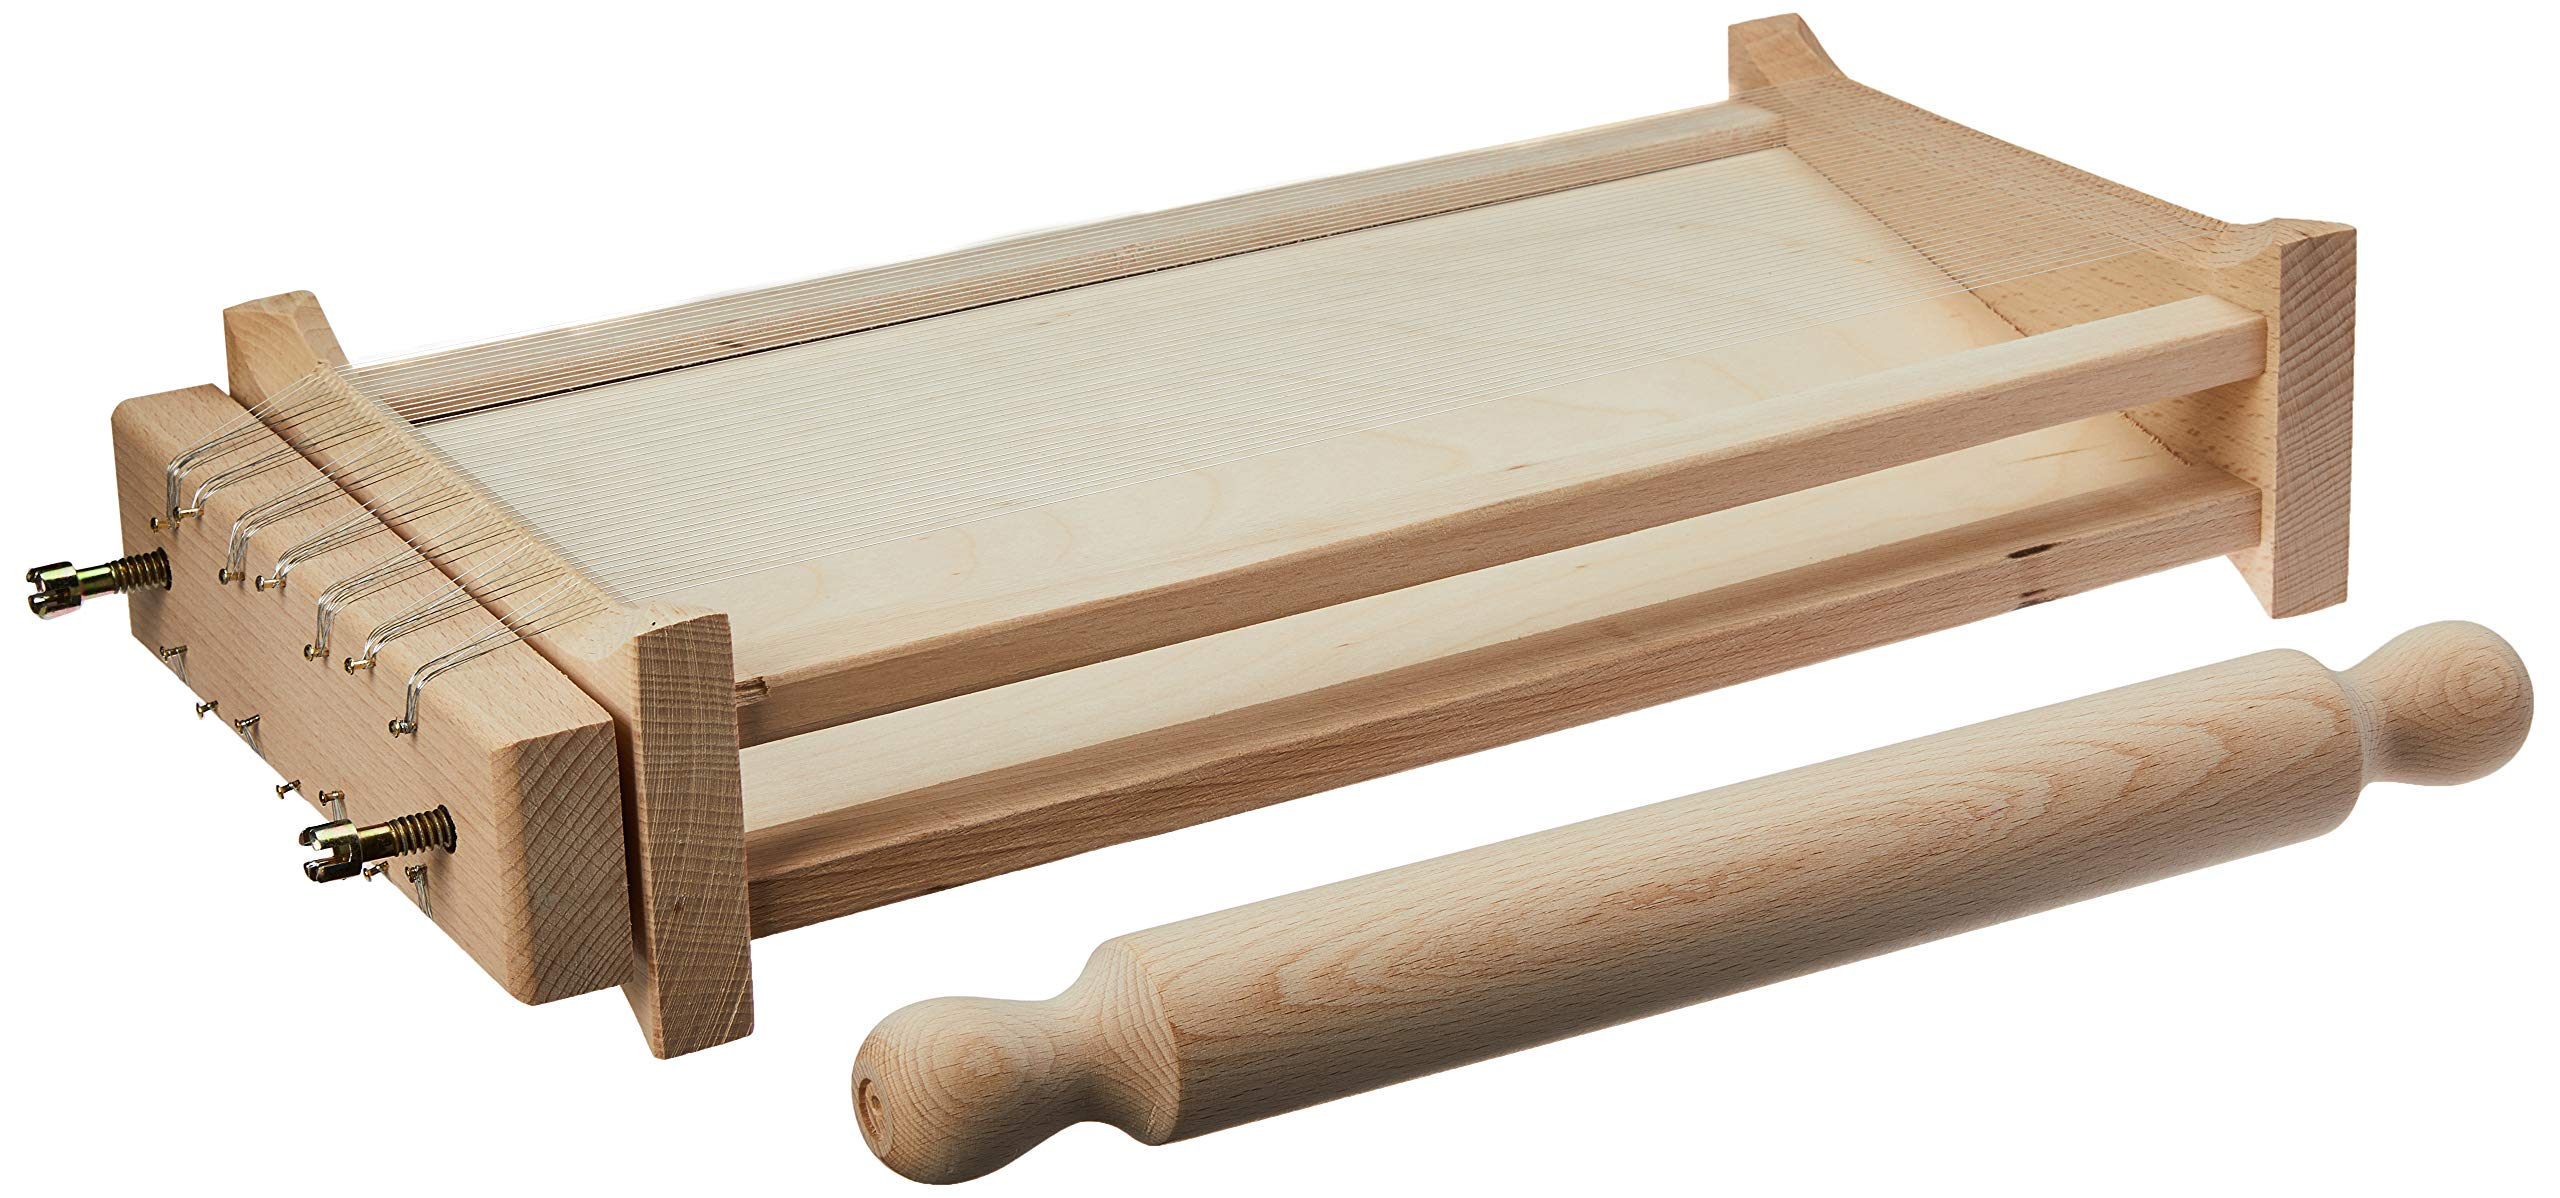 Eppicotispai''Chitarra'' Pasta Cutter with 32cm/12.5-Inch Rolling Pin